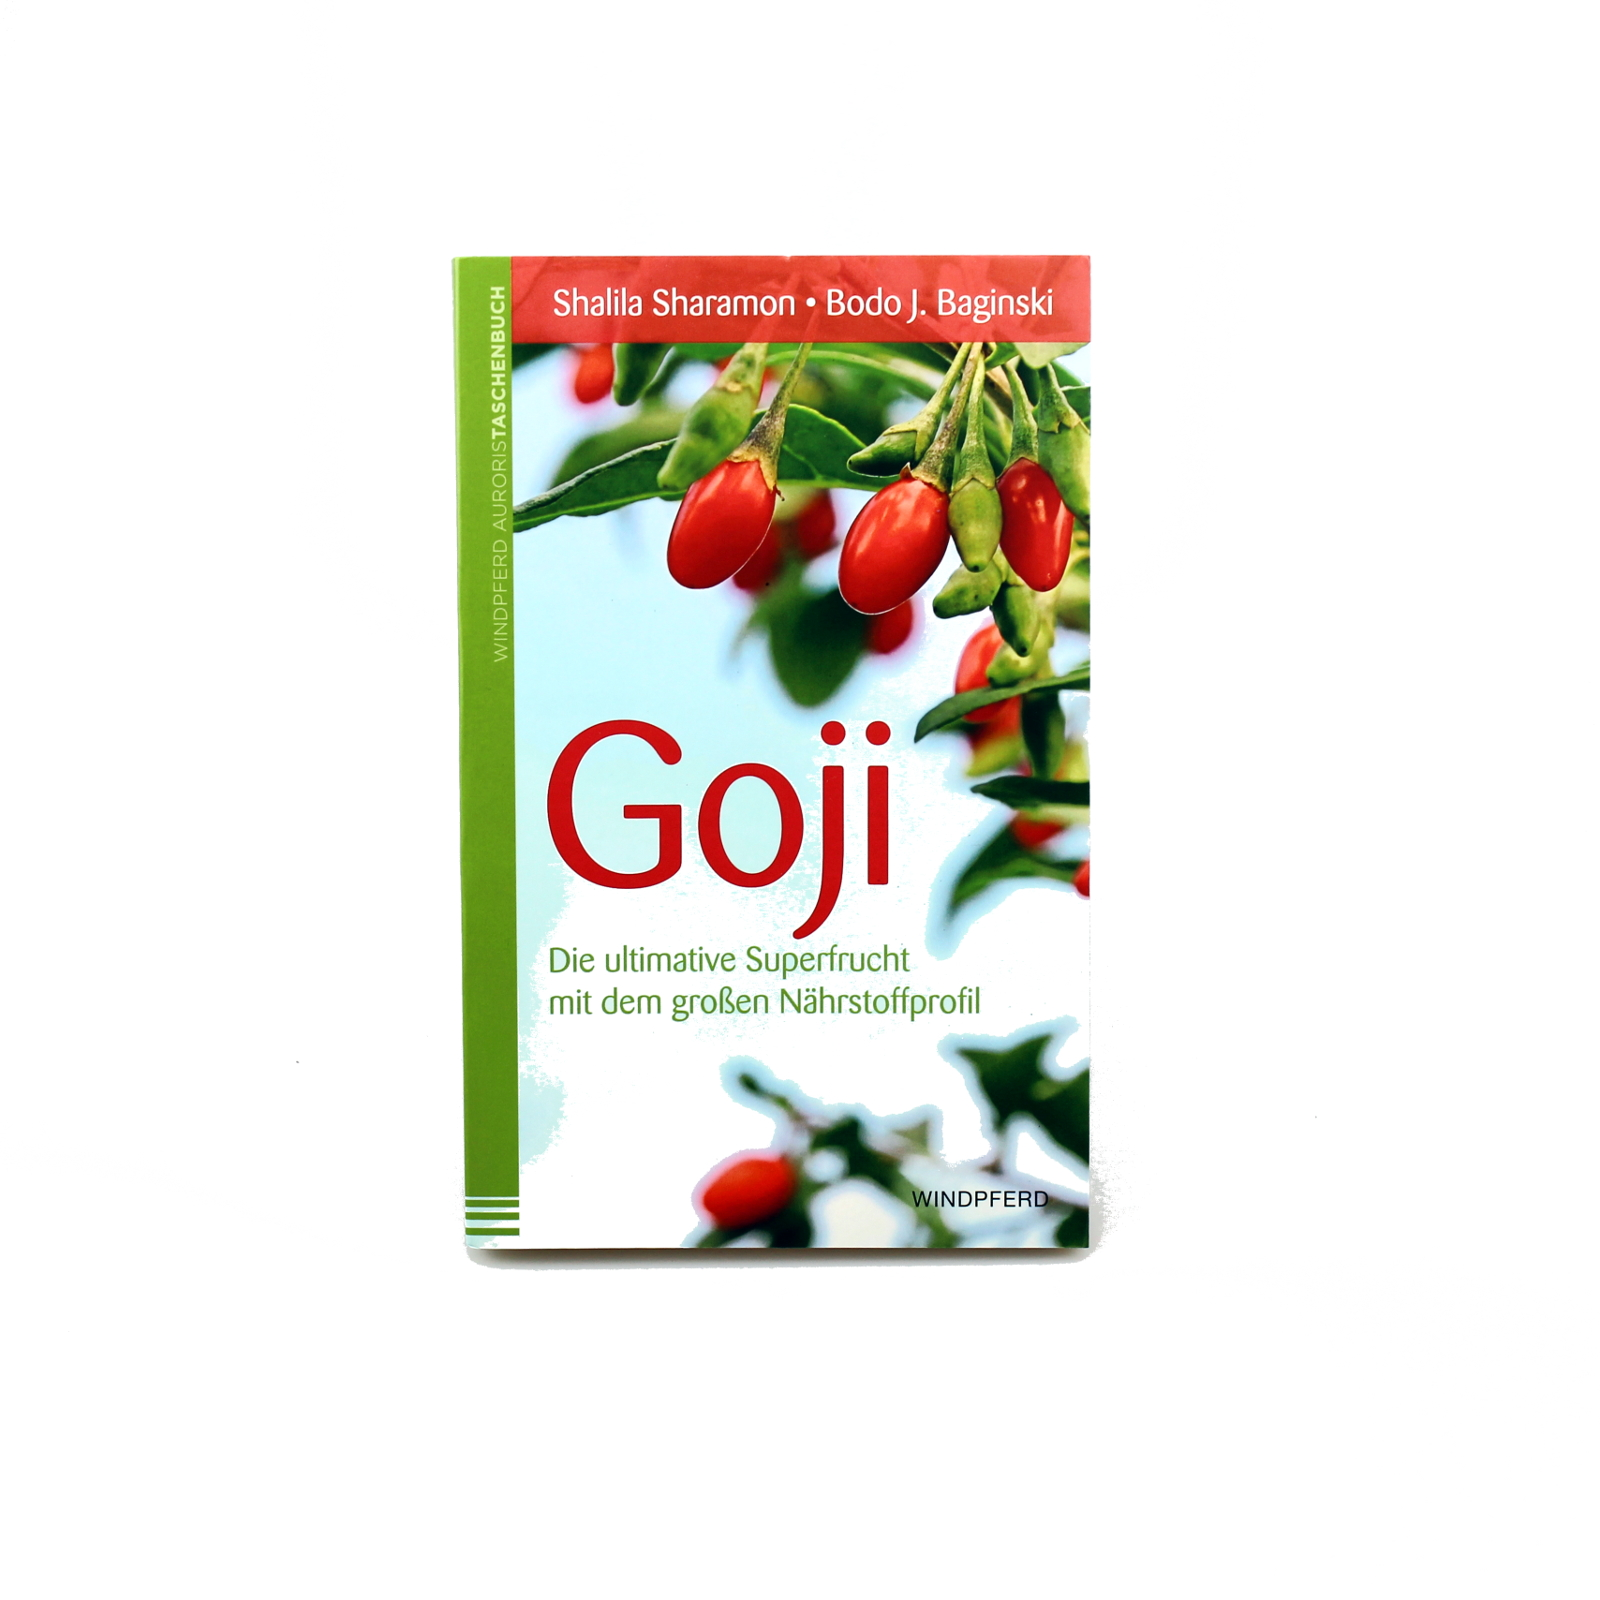 Goji - Die ultimative Superfrucht - Buch Image